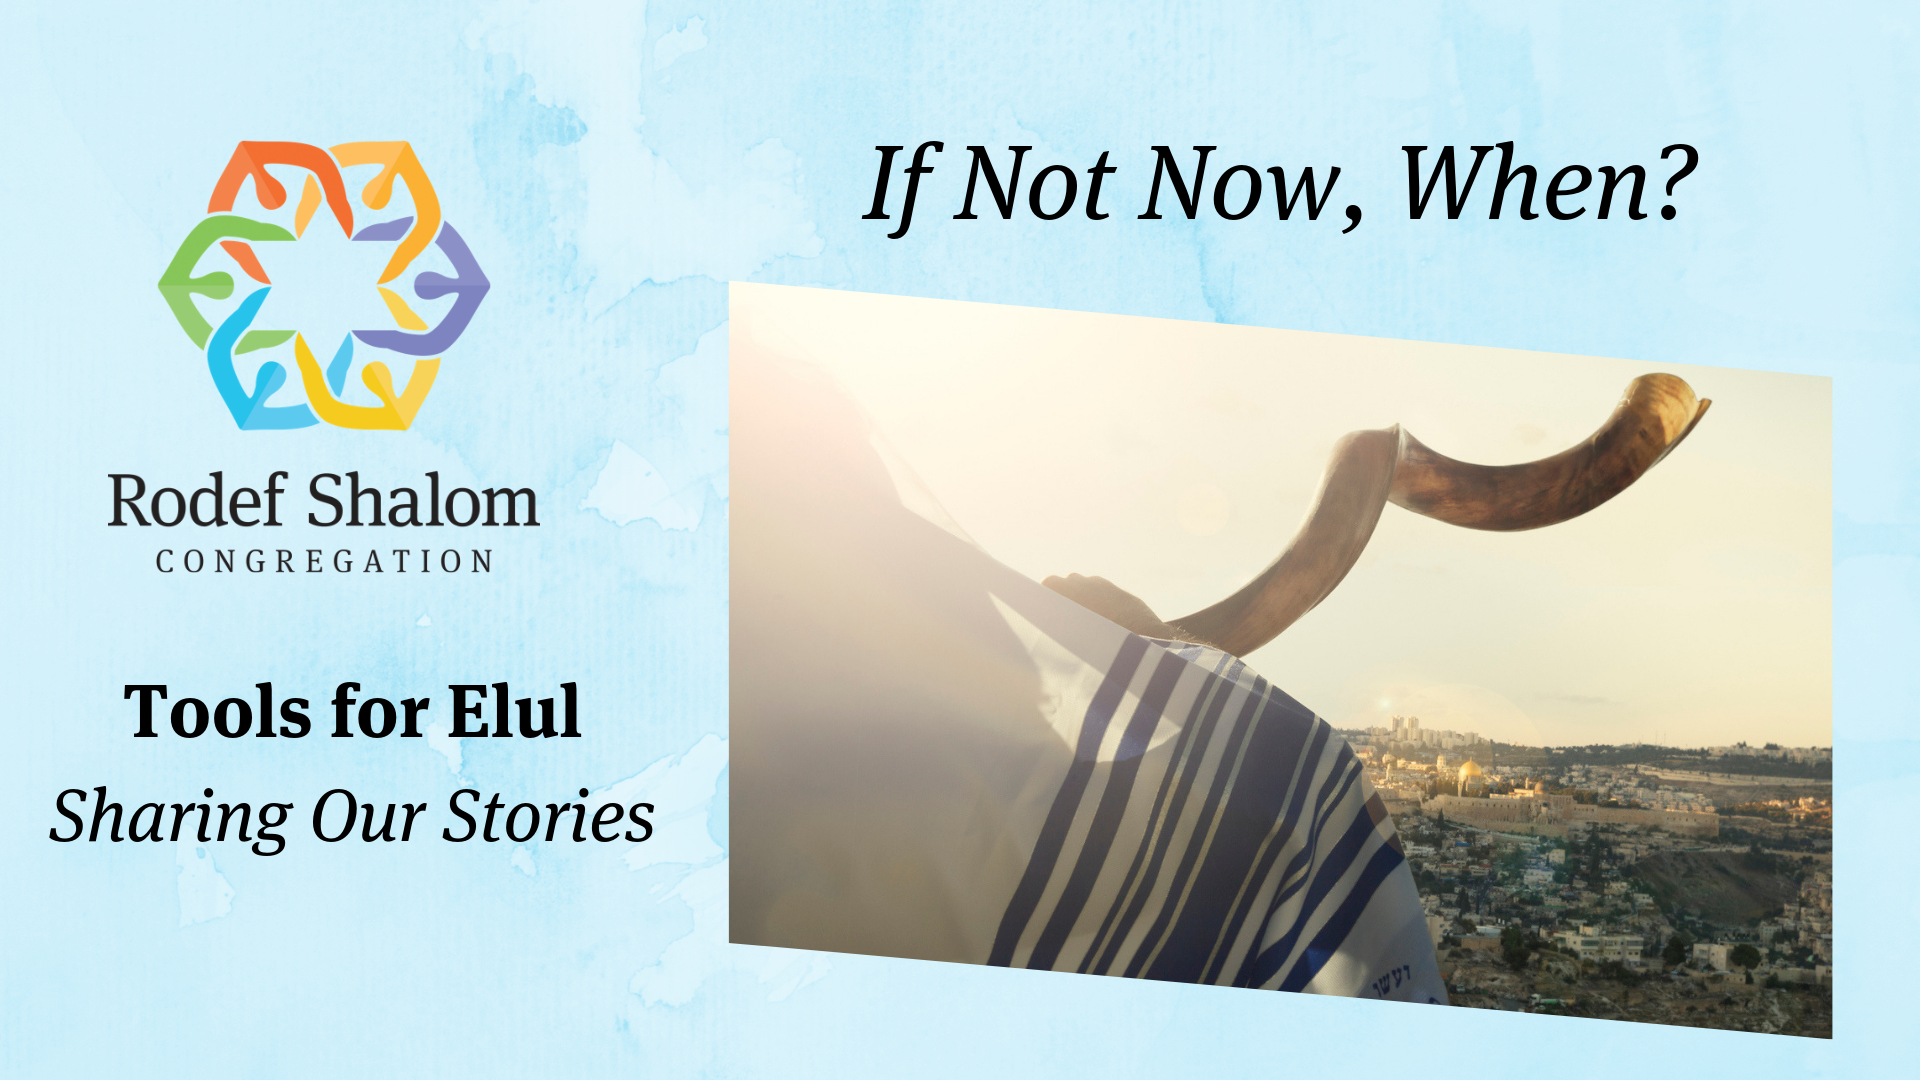 Tools for Elul Headers 8.27.19 (1).png